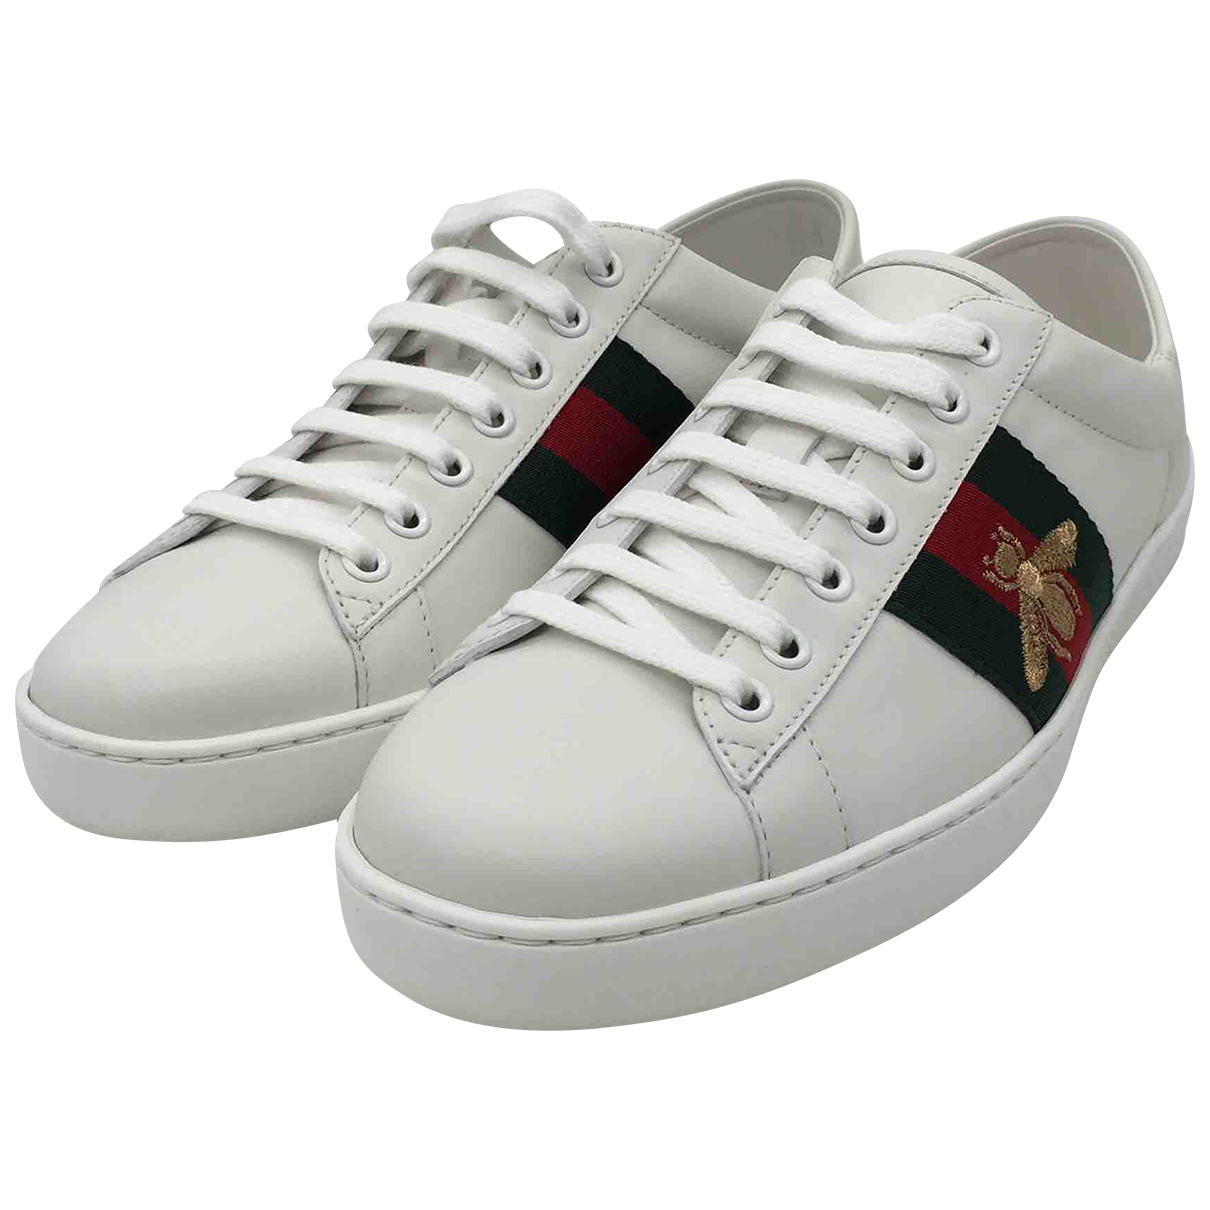 Gucci Ace White Leather Trainers for Men 6 UK